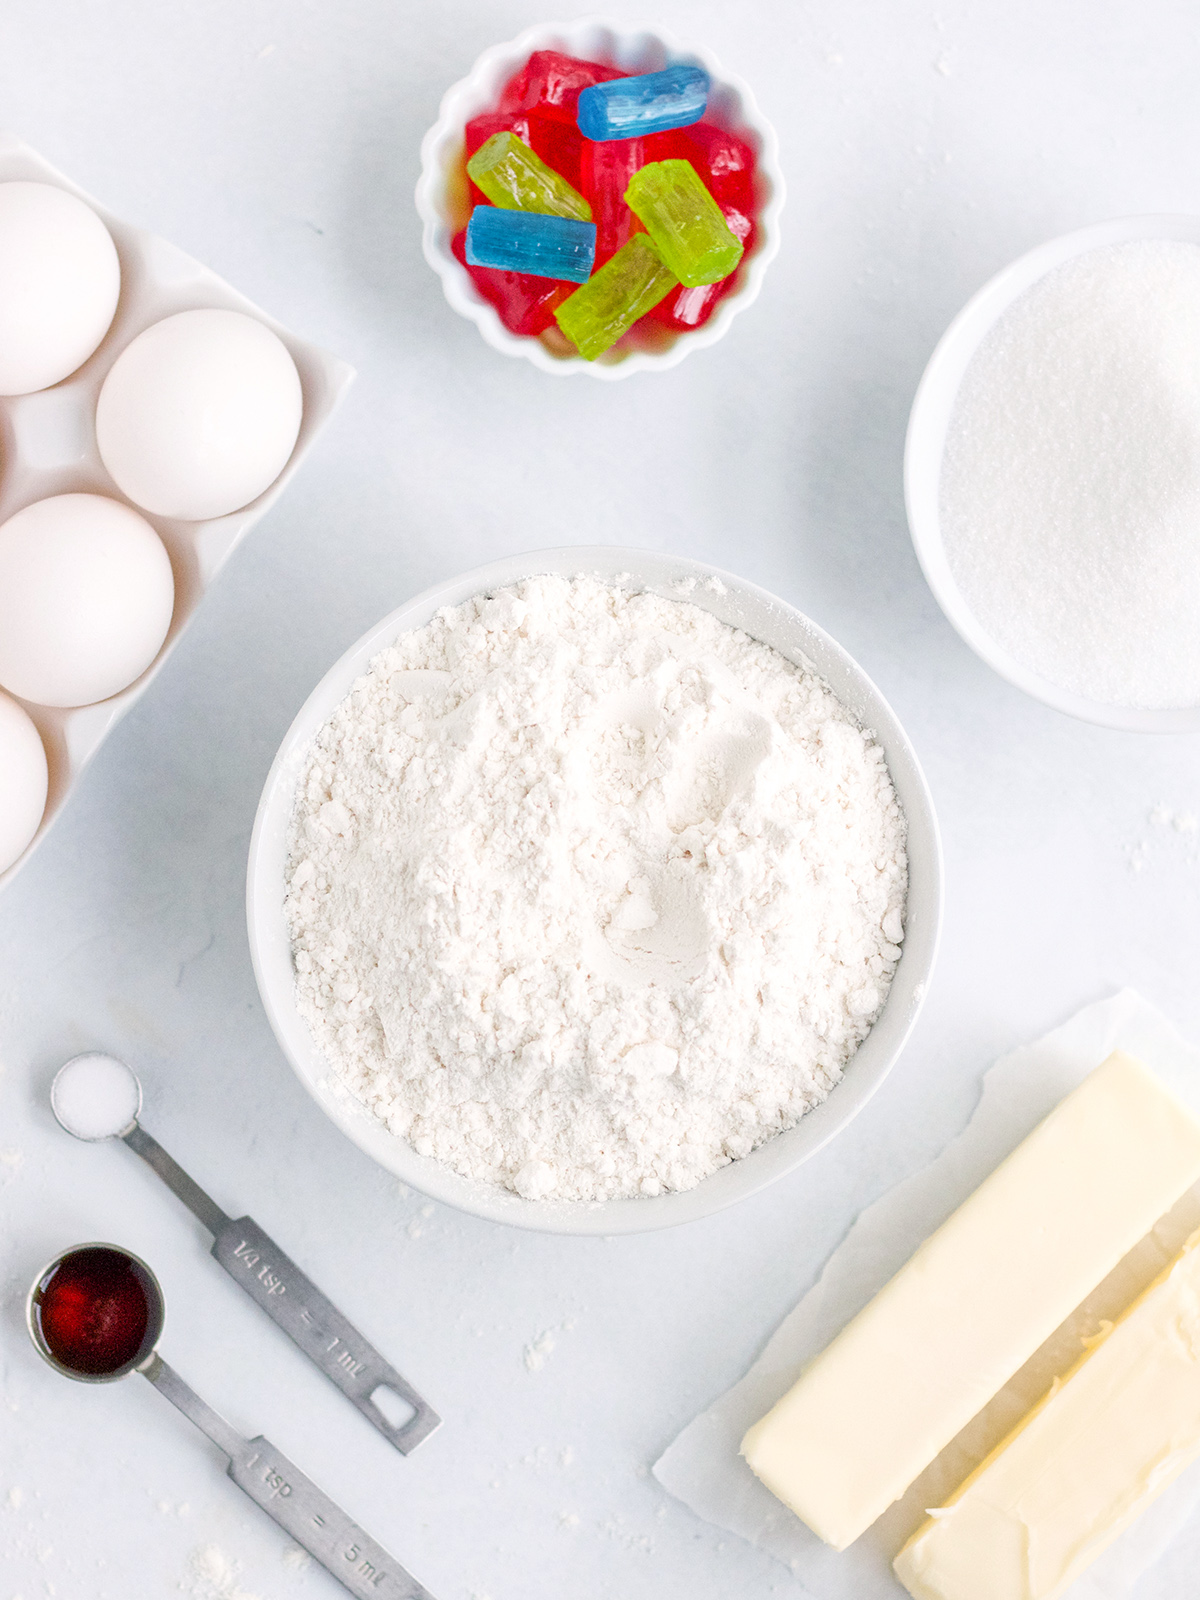 Ingredients for Stained Glass Cookies